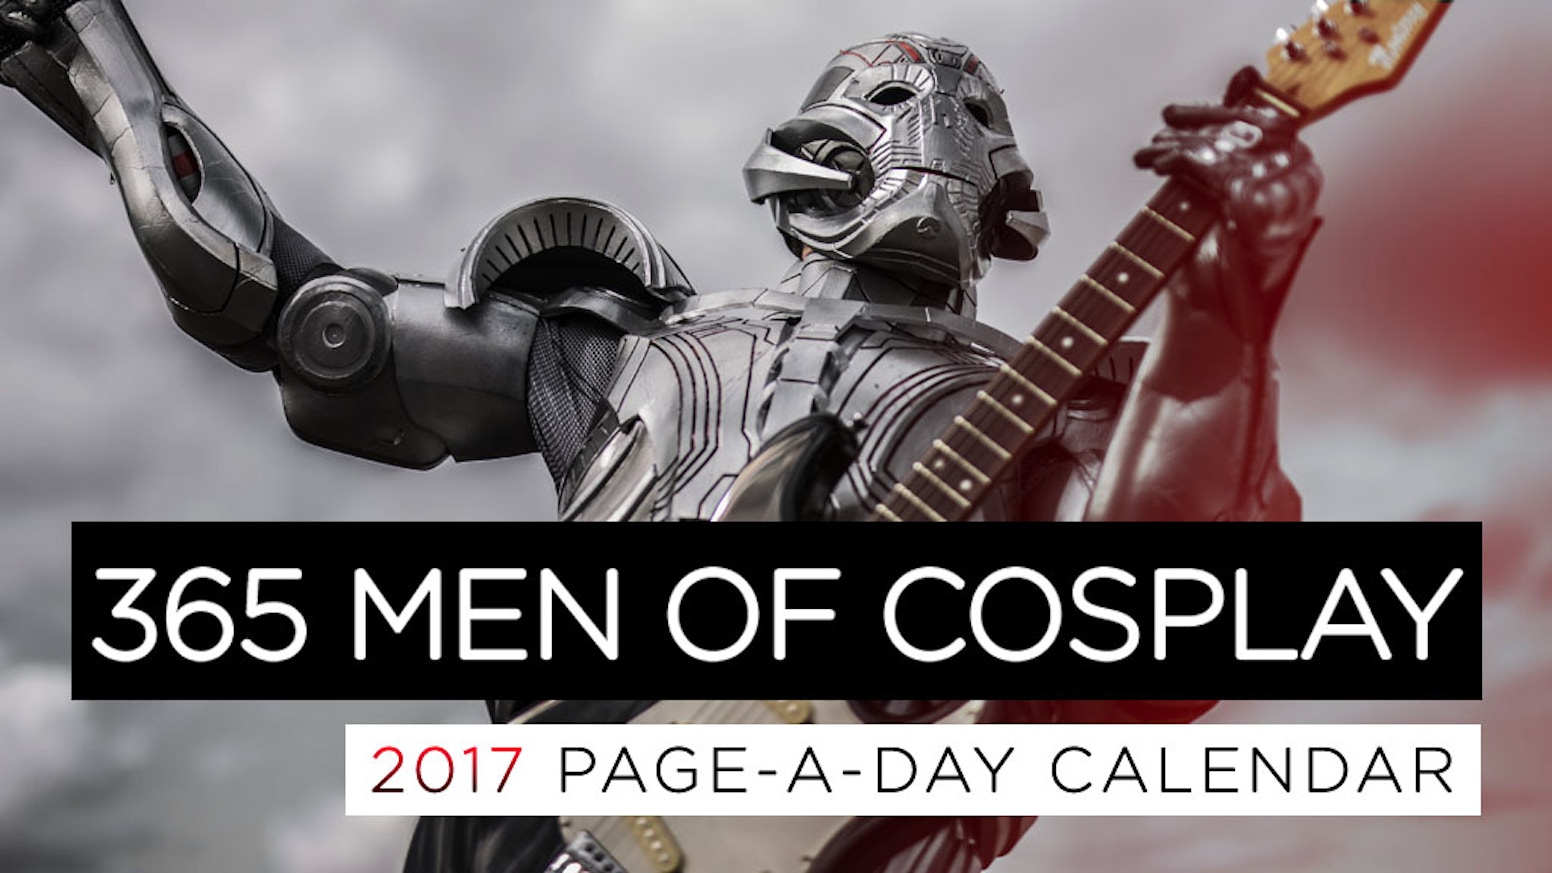 We're celebrating the diverse and talented male costumers of the cosplay community with a beautiful 365 page-a-day-style calendar!